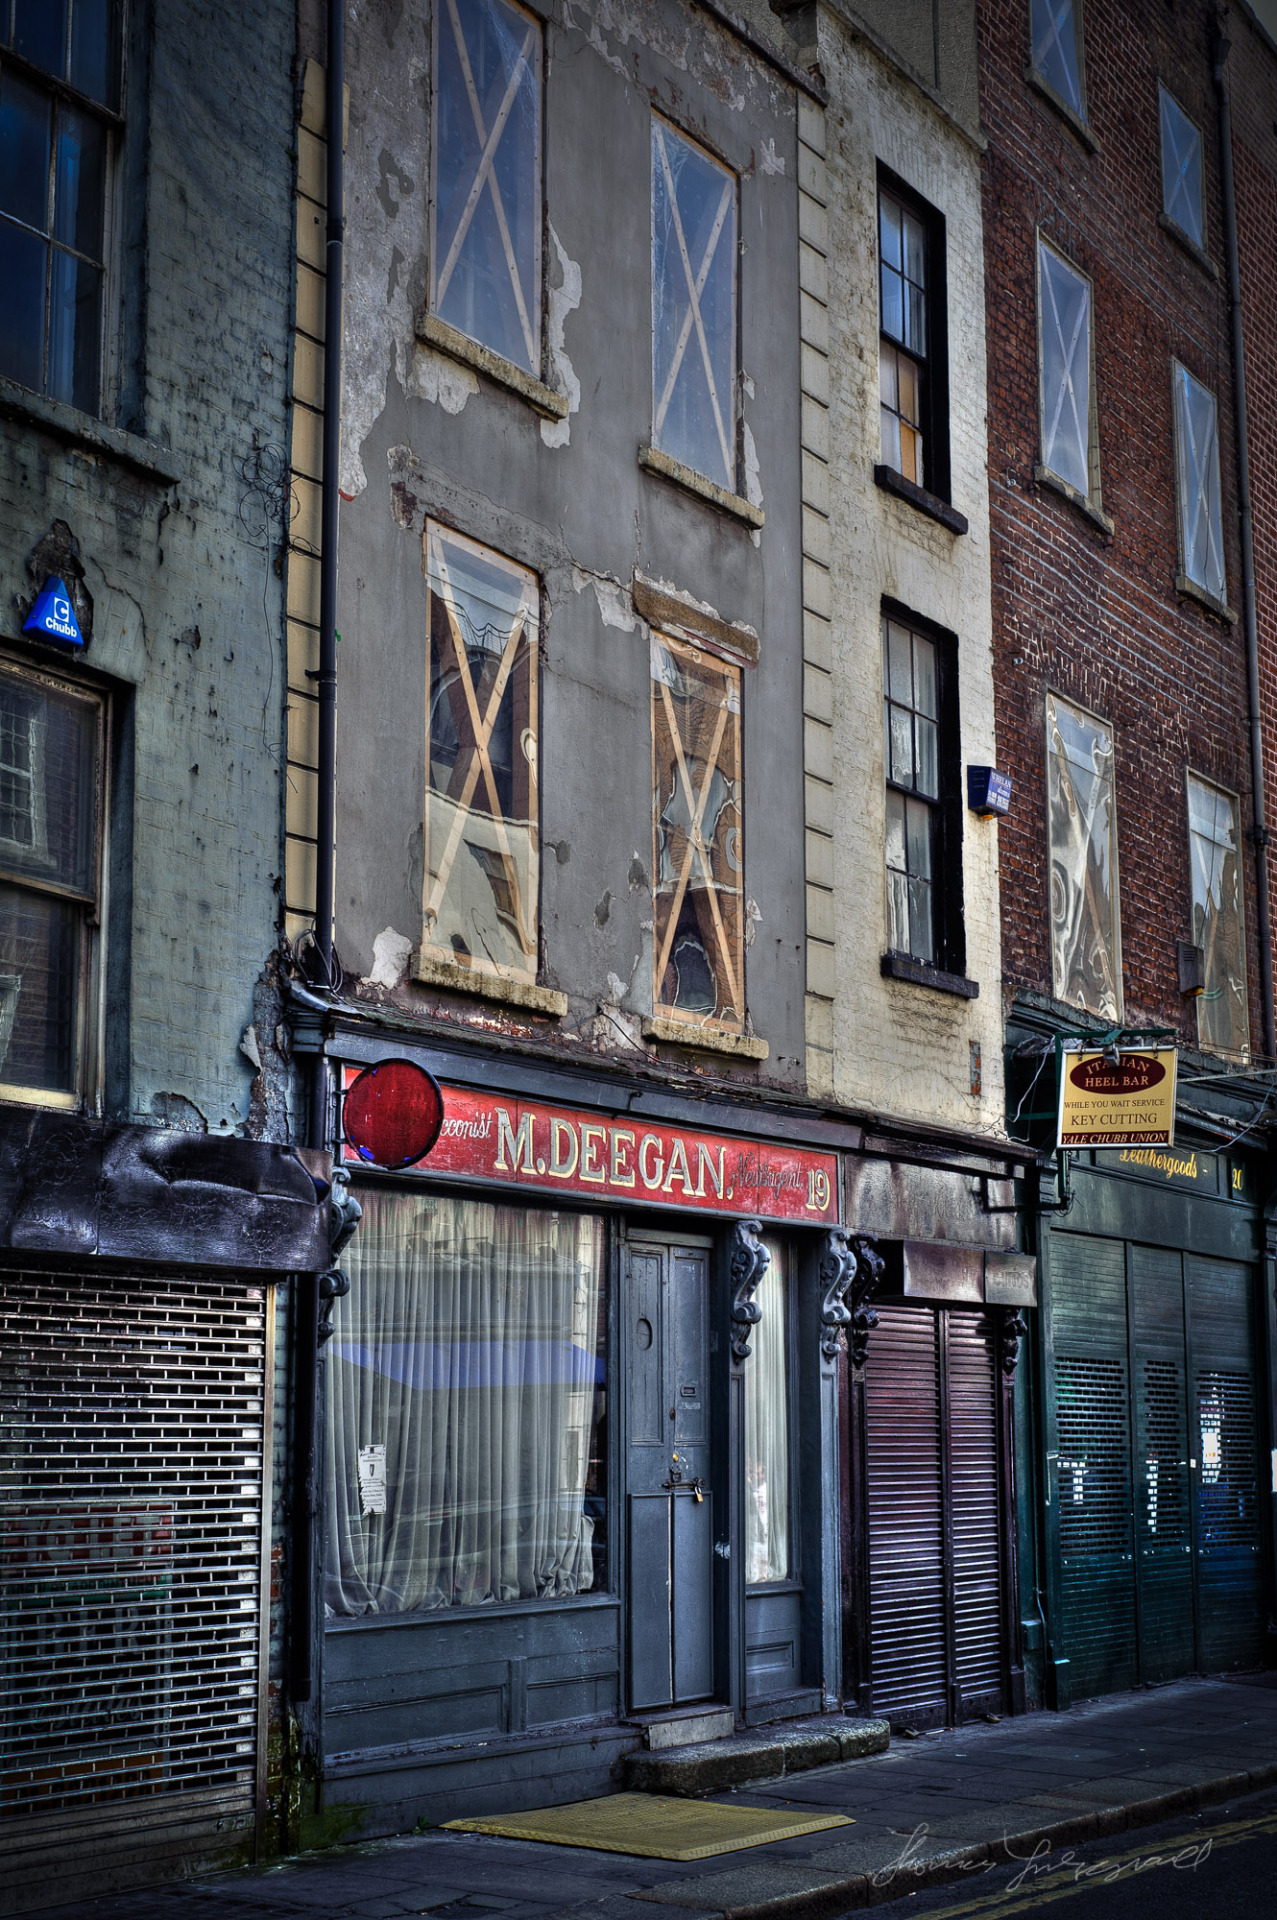 A wonderful old building in Dublin City. It's ruined facade is full of character and texture. It's been cleaned up a bit since I took this but I still love the character